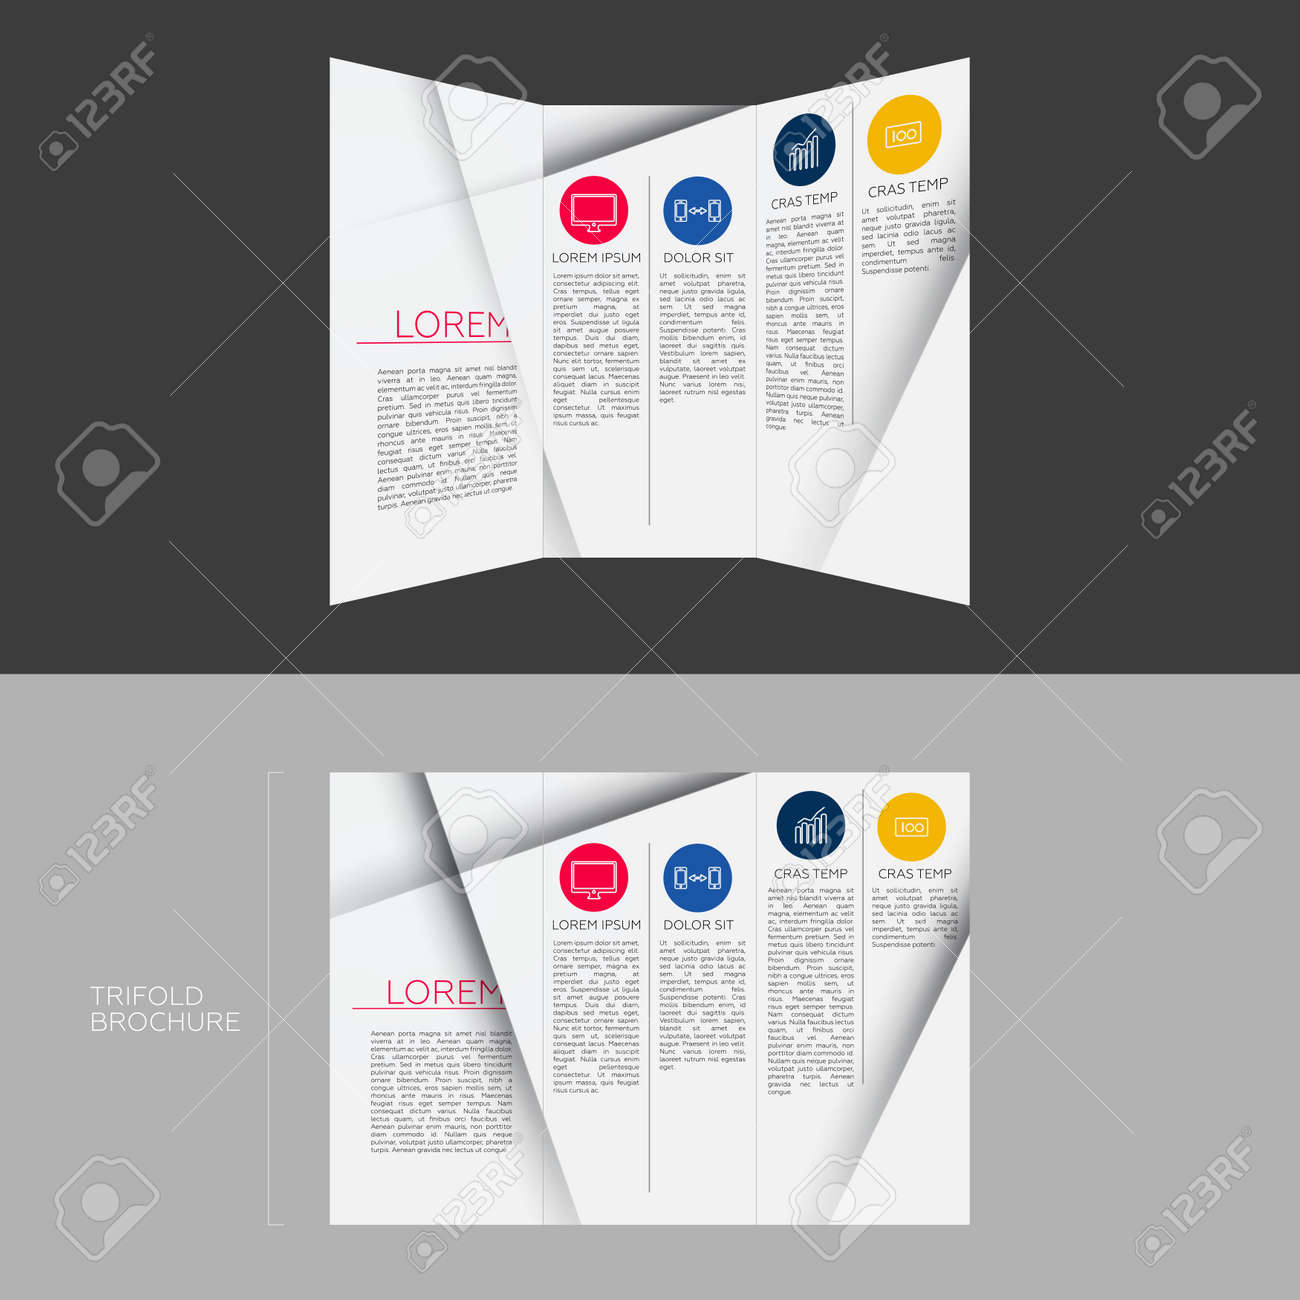 Trifold Brochure Template Design In DL Size Royalty Free Cliparts ...